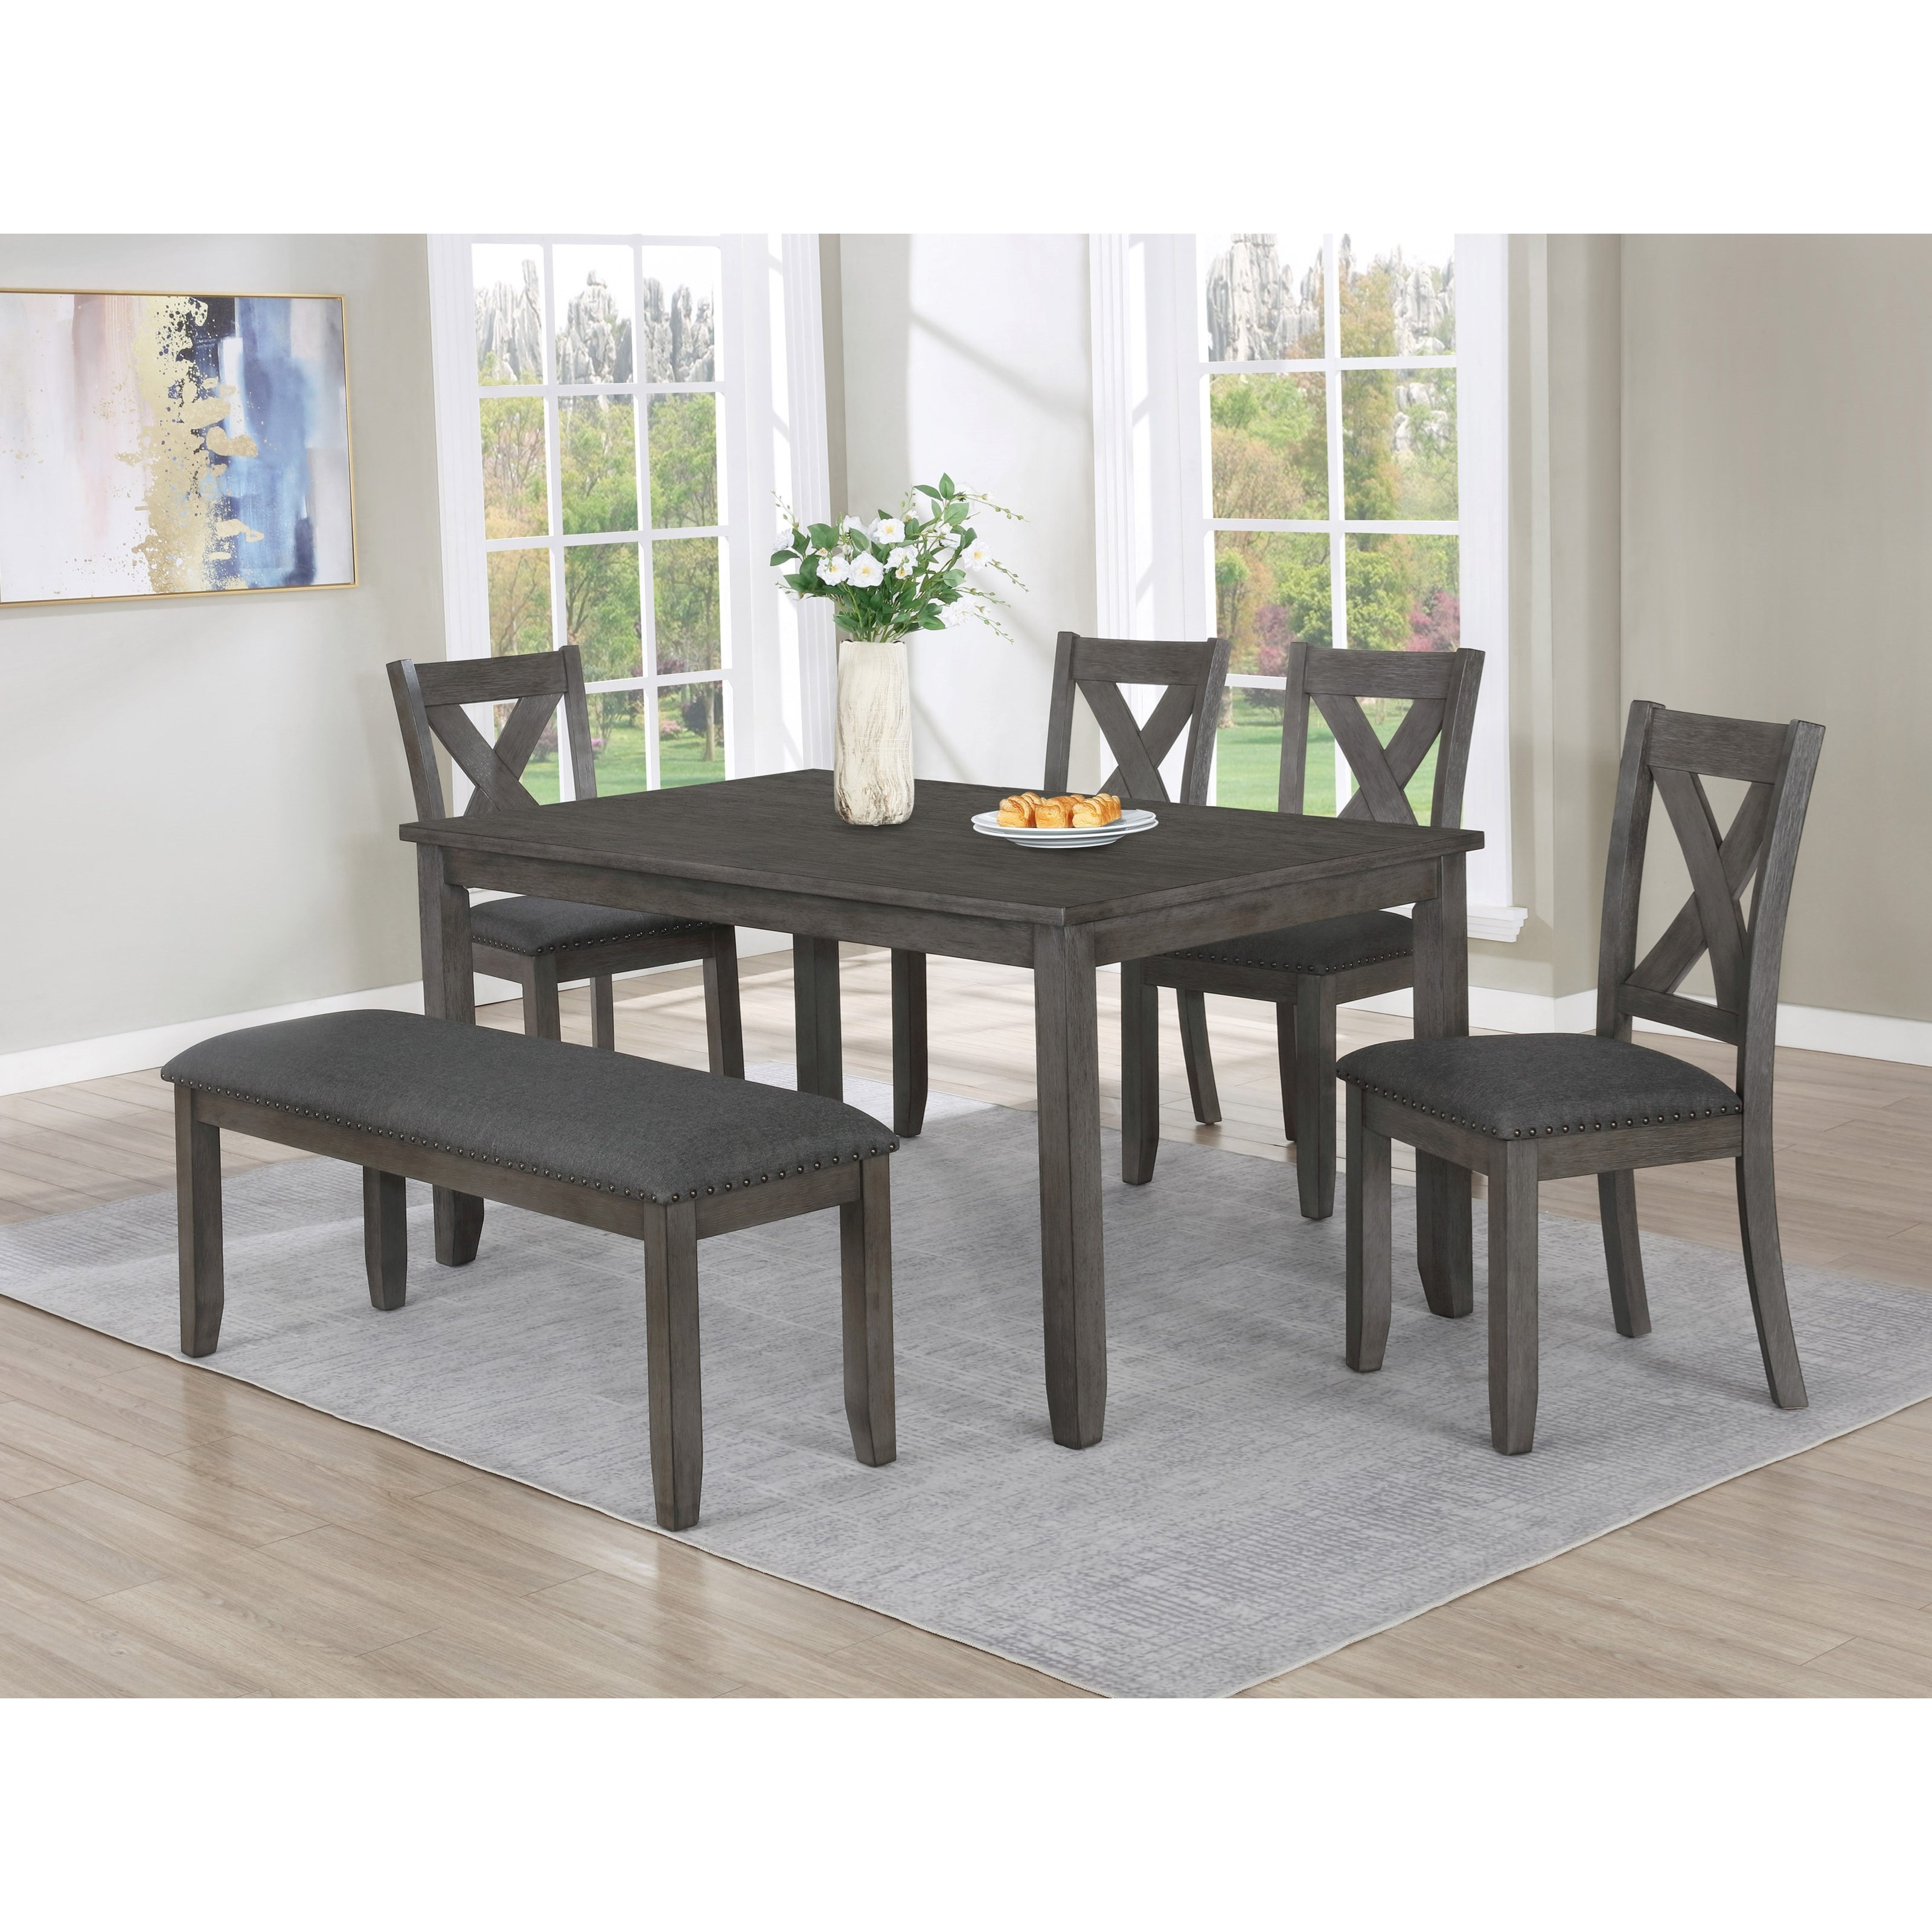 Favella Table Set with Bench by Crown Mark at Northeast Factory Direct